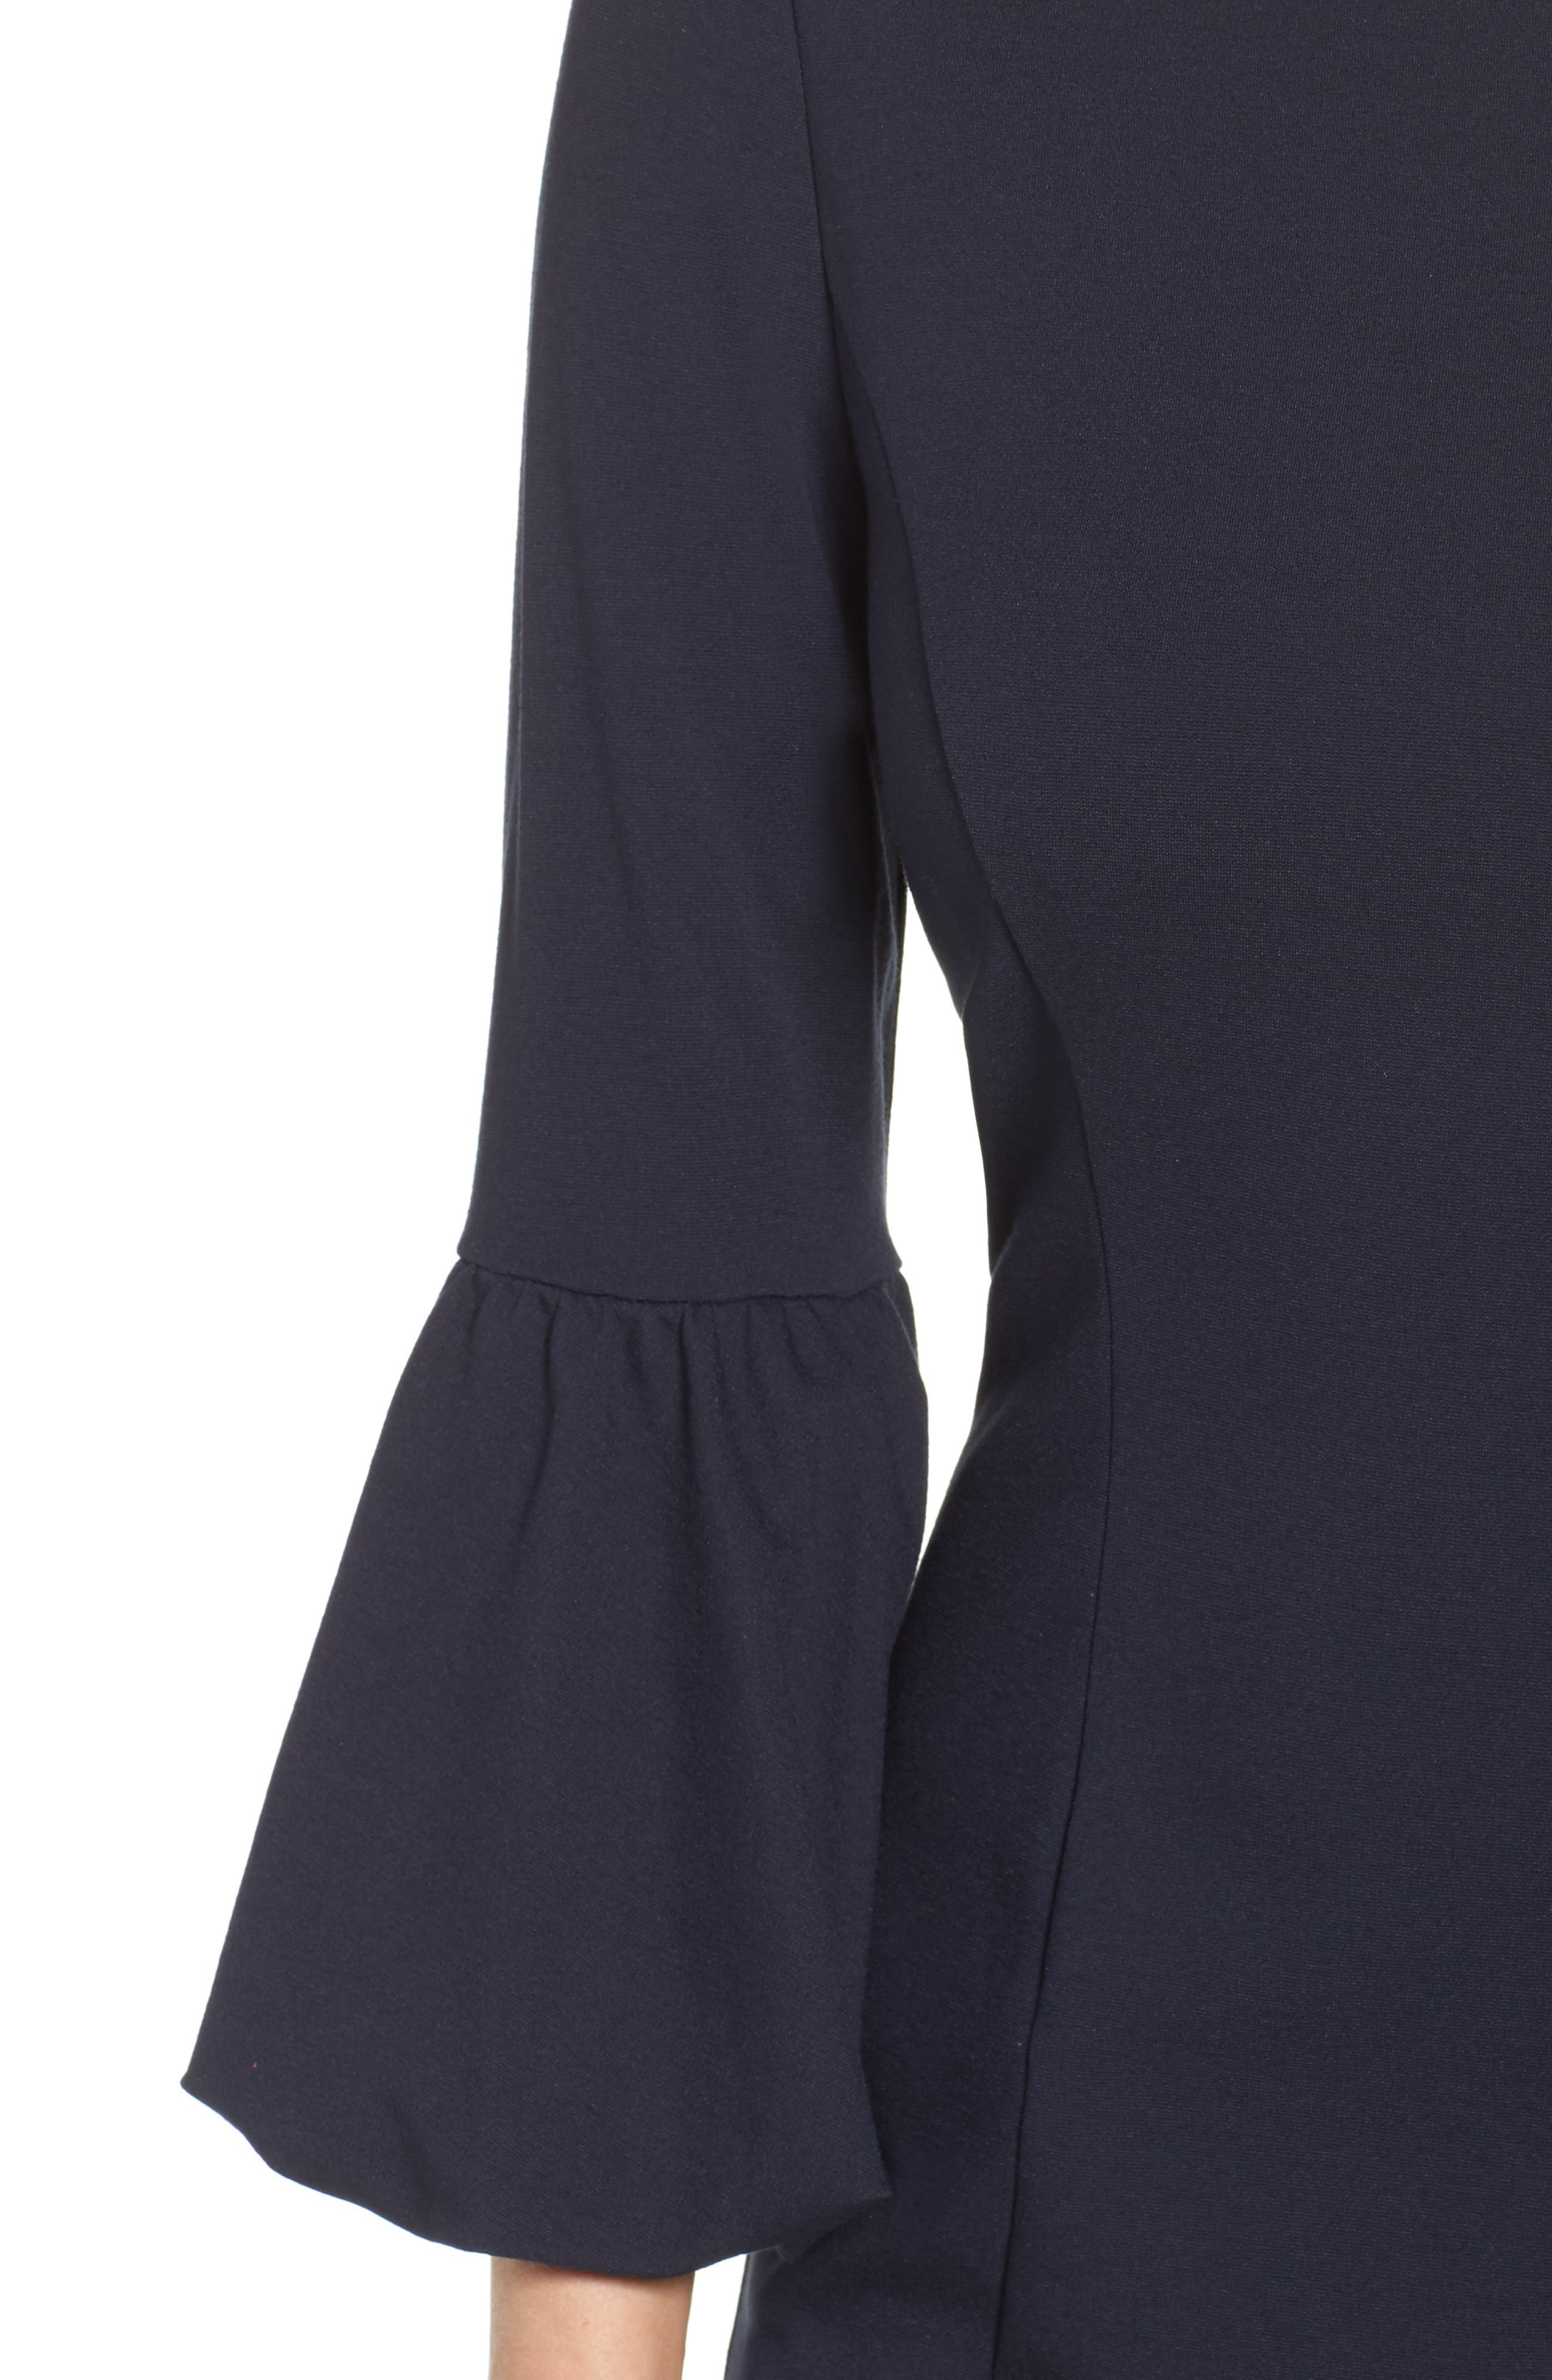 Ruffle Sleeve Sheath Dress,                             Alternate thumbnail 4, color,                             NAVY